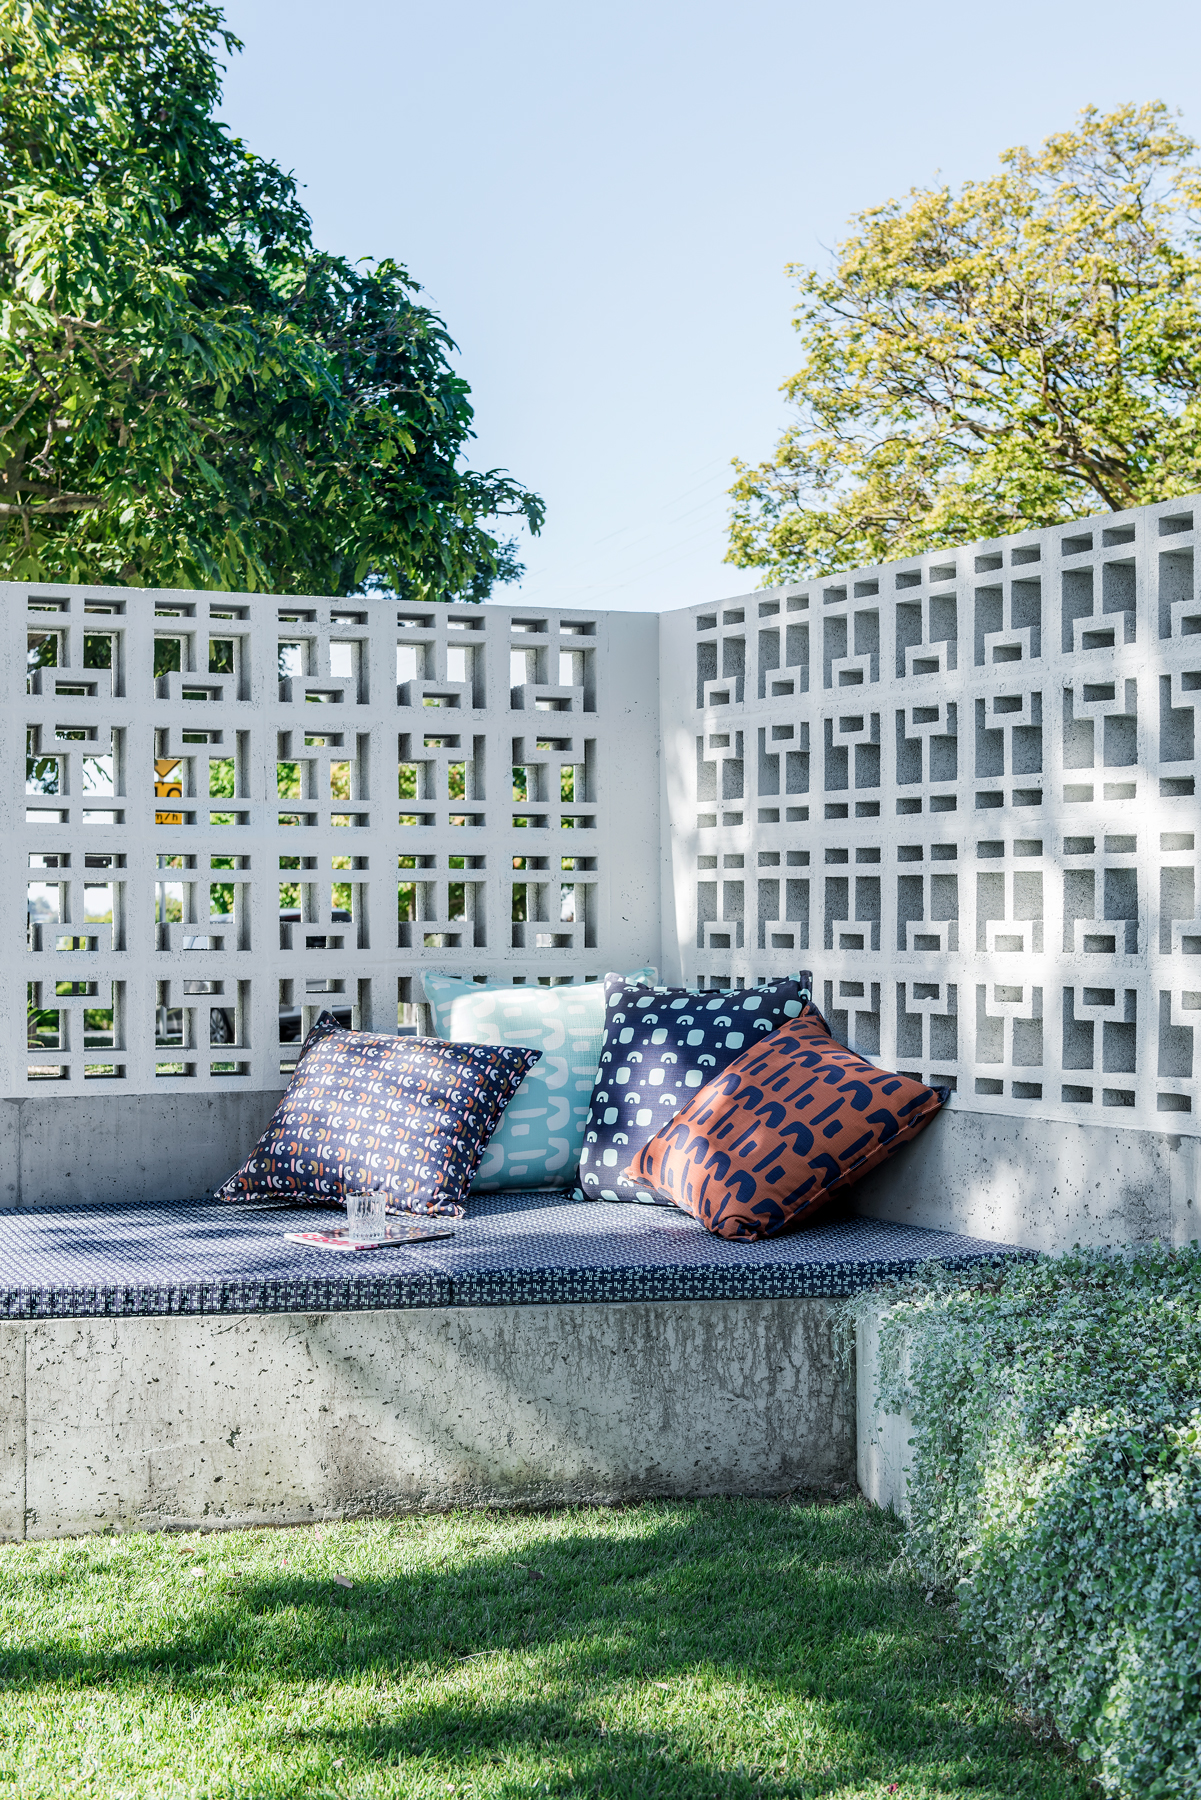 Georgia Cannon X Style Revolutionary Outdoor Fabric. Landscape Architect: Dan Young. Photographer: Cathy Schusler